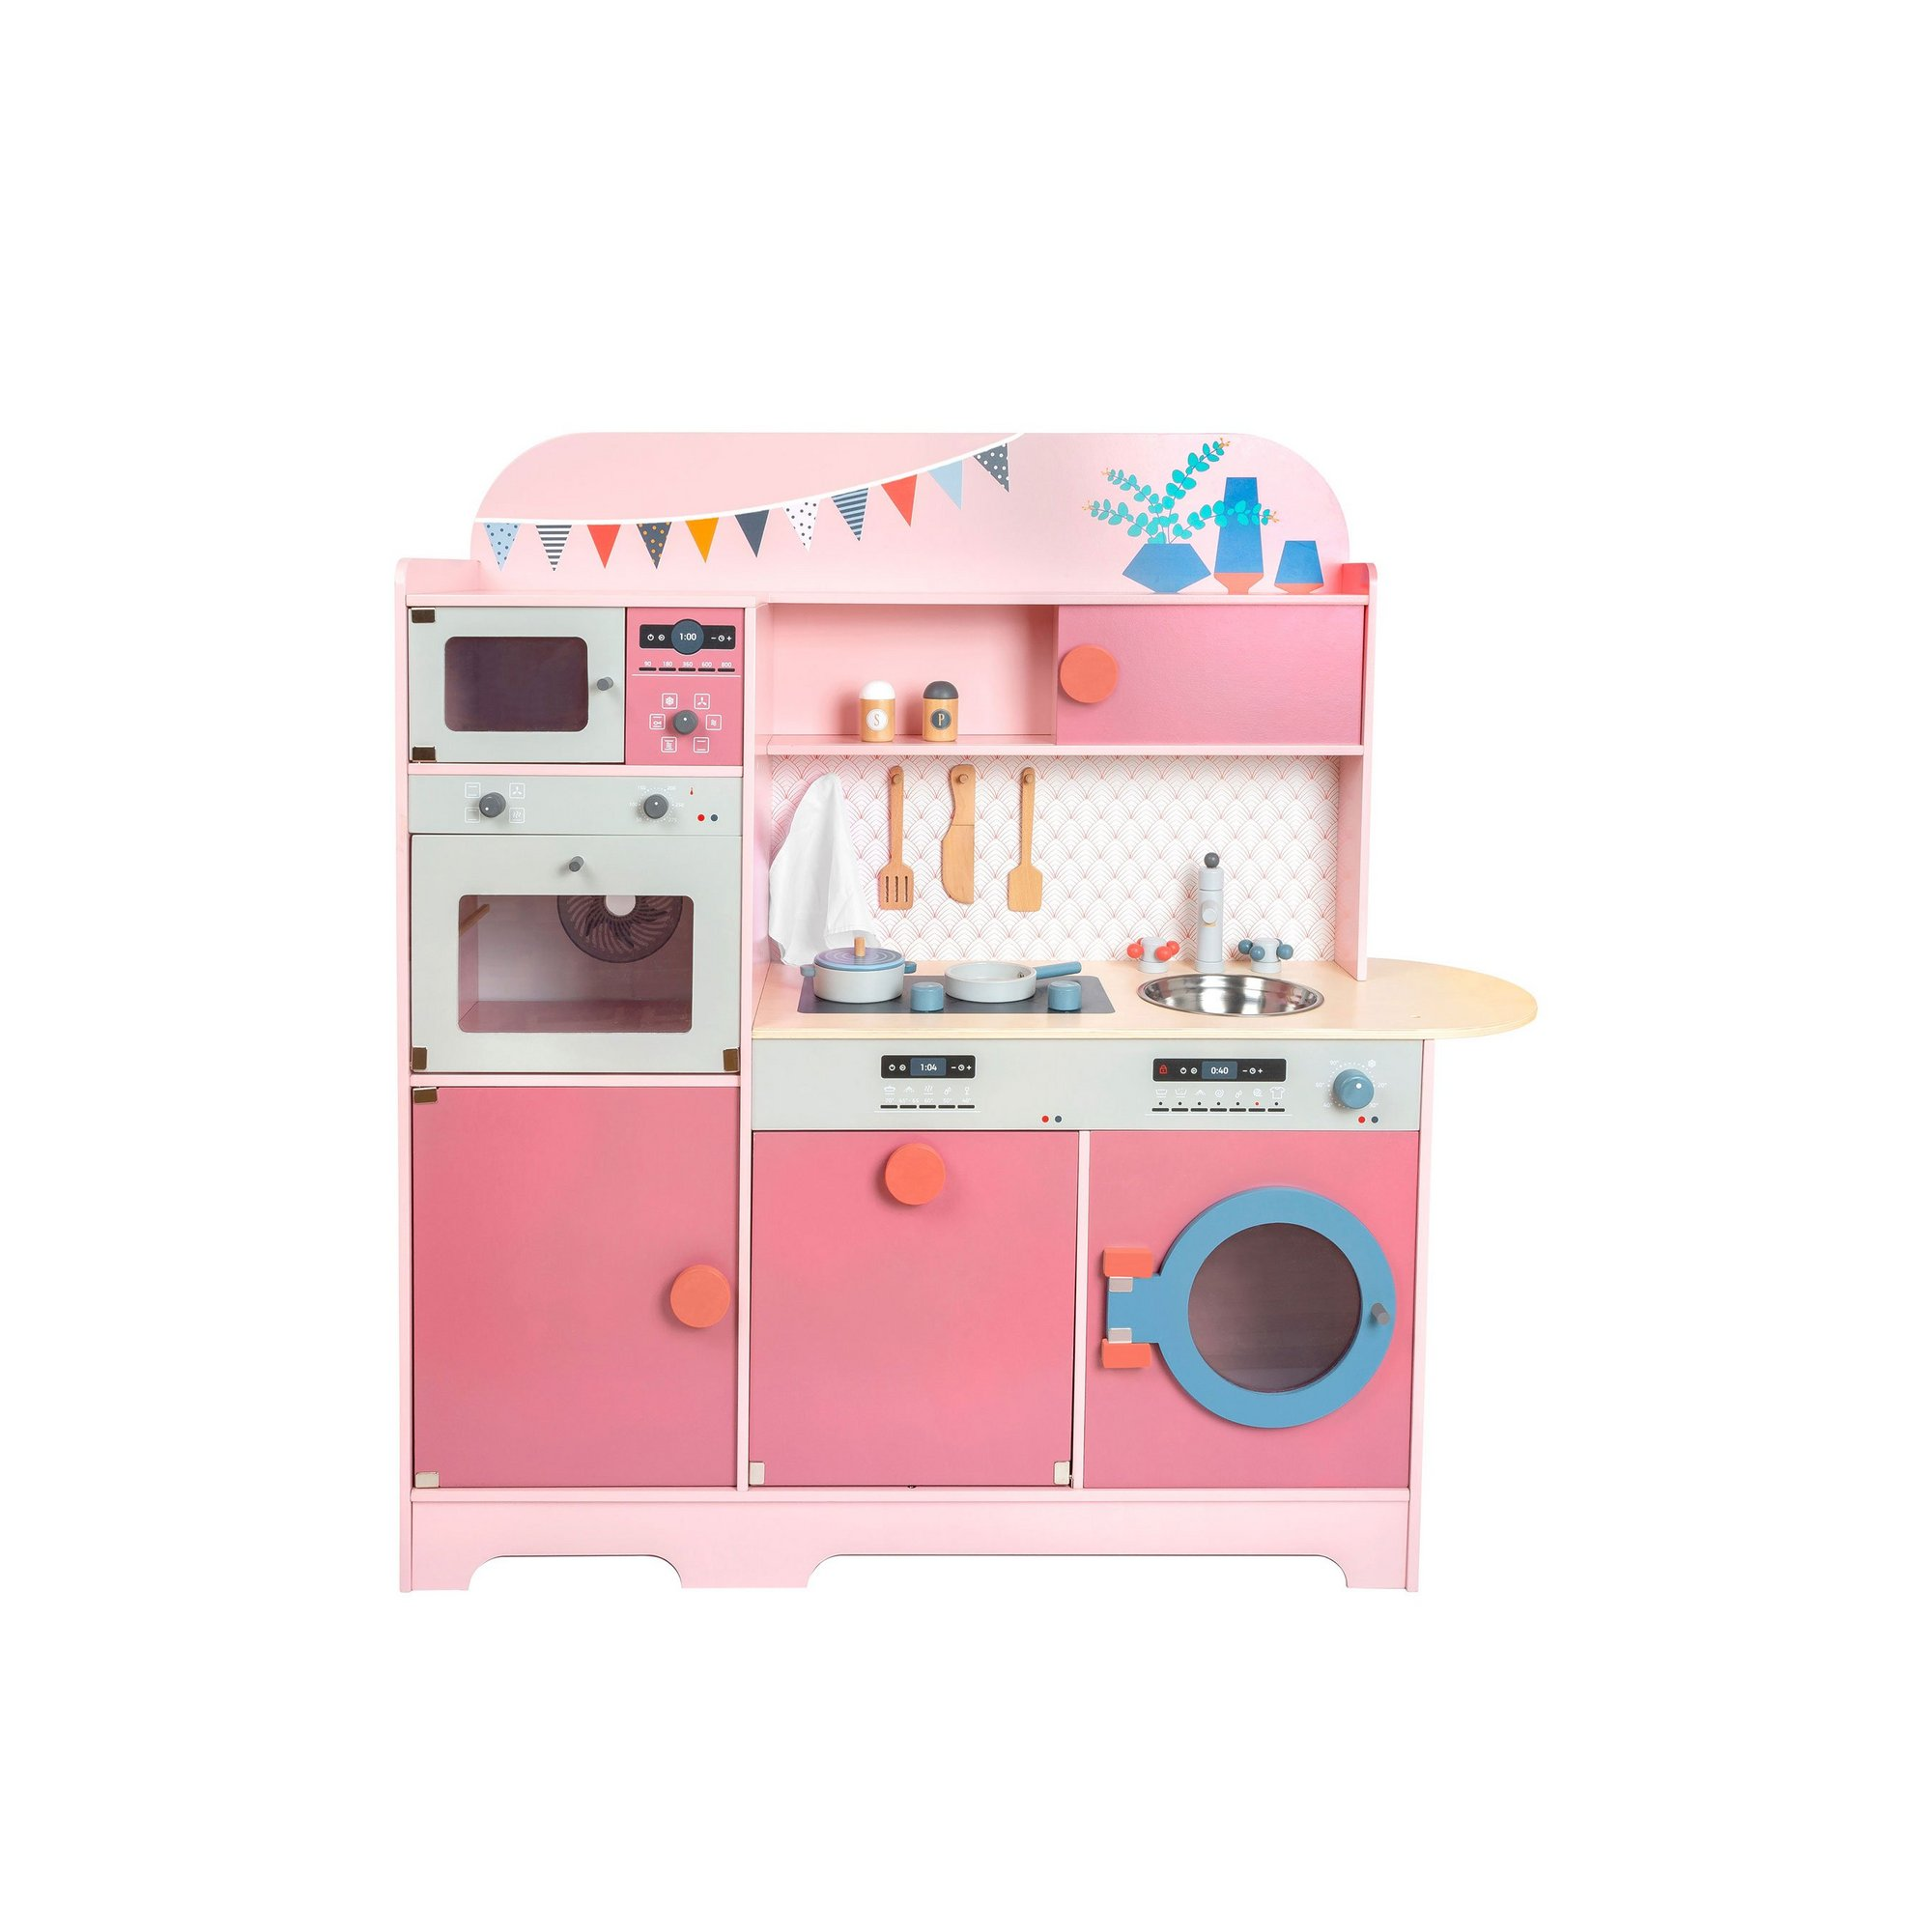 Image of LEGLER Small Foot Childrens Kitchen Gourmet Play Set